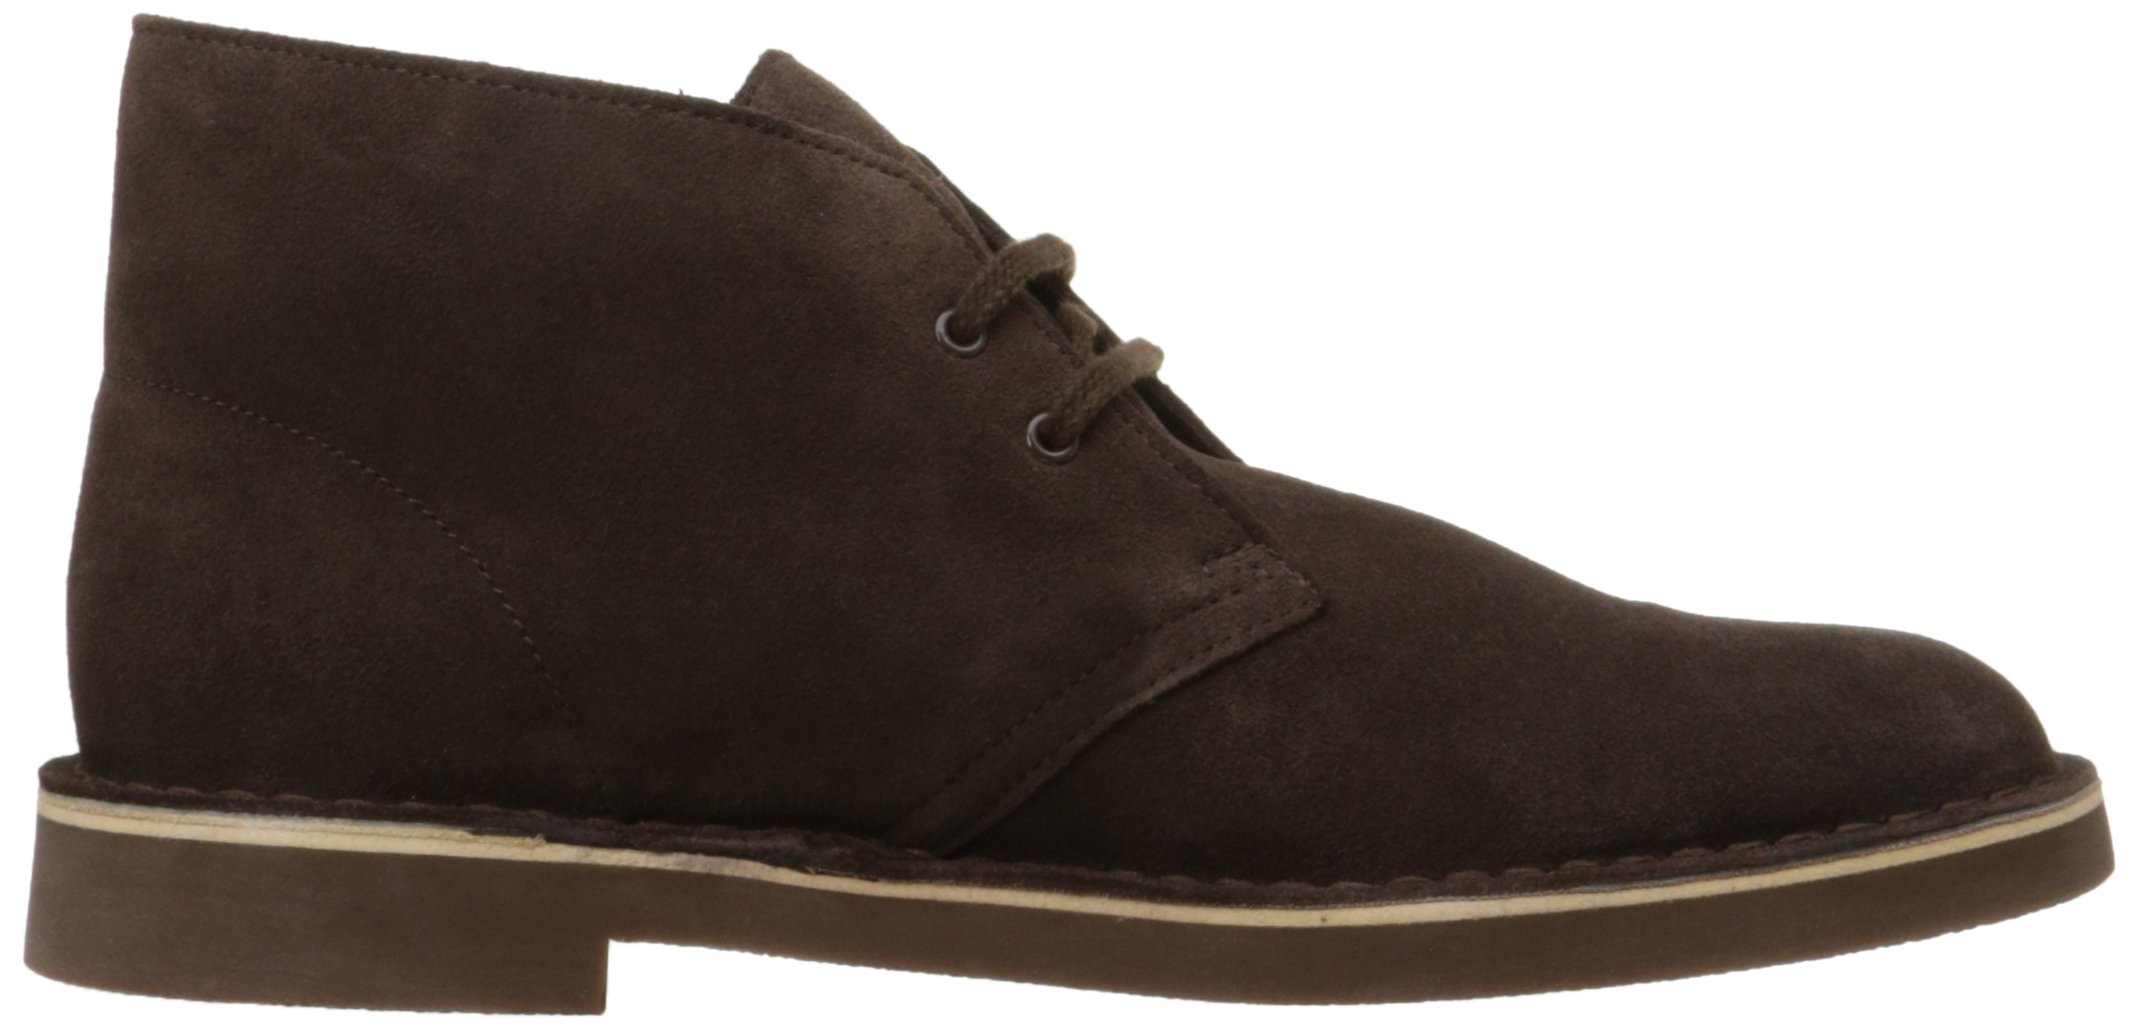 Clarks Men's Bushacre 2 Chukka Boot,Brown Suede,13 M US by CLARKS (Image #7)